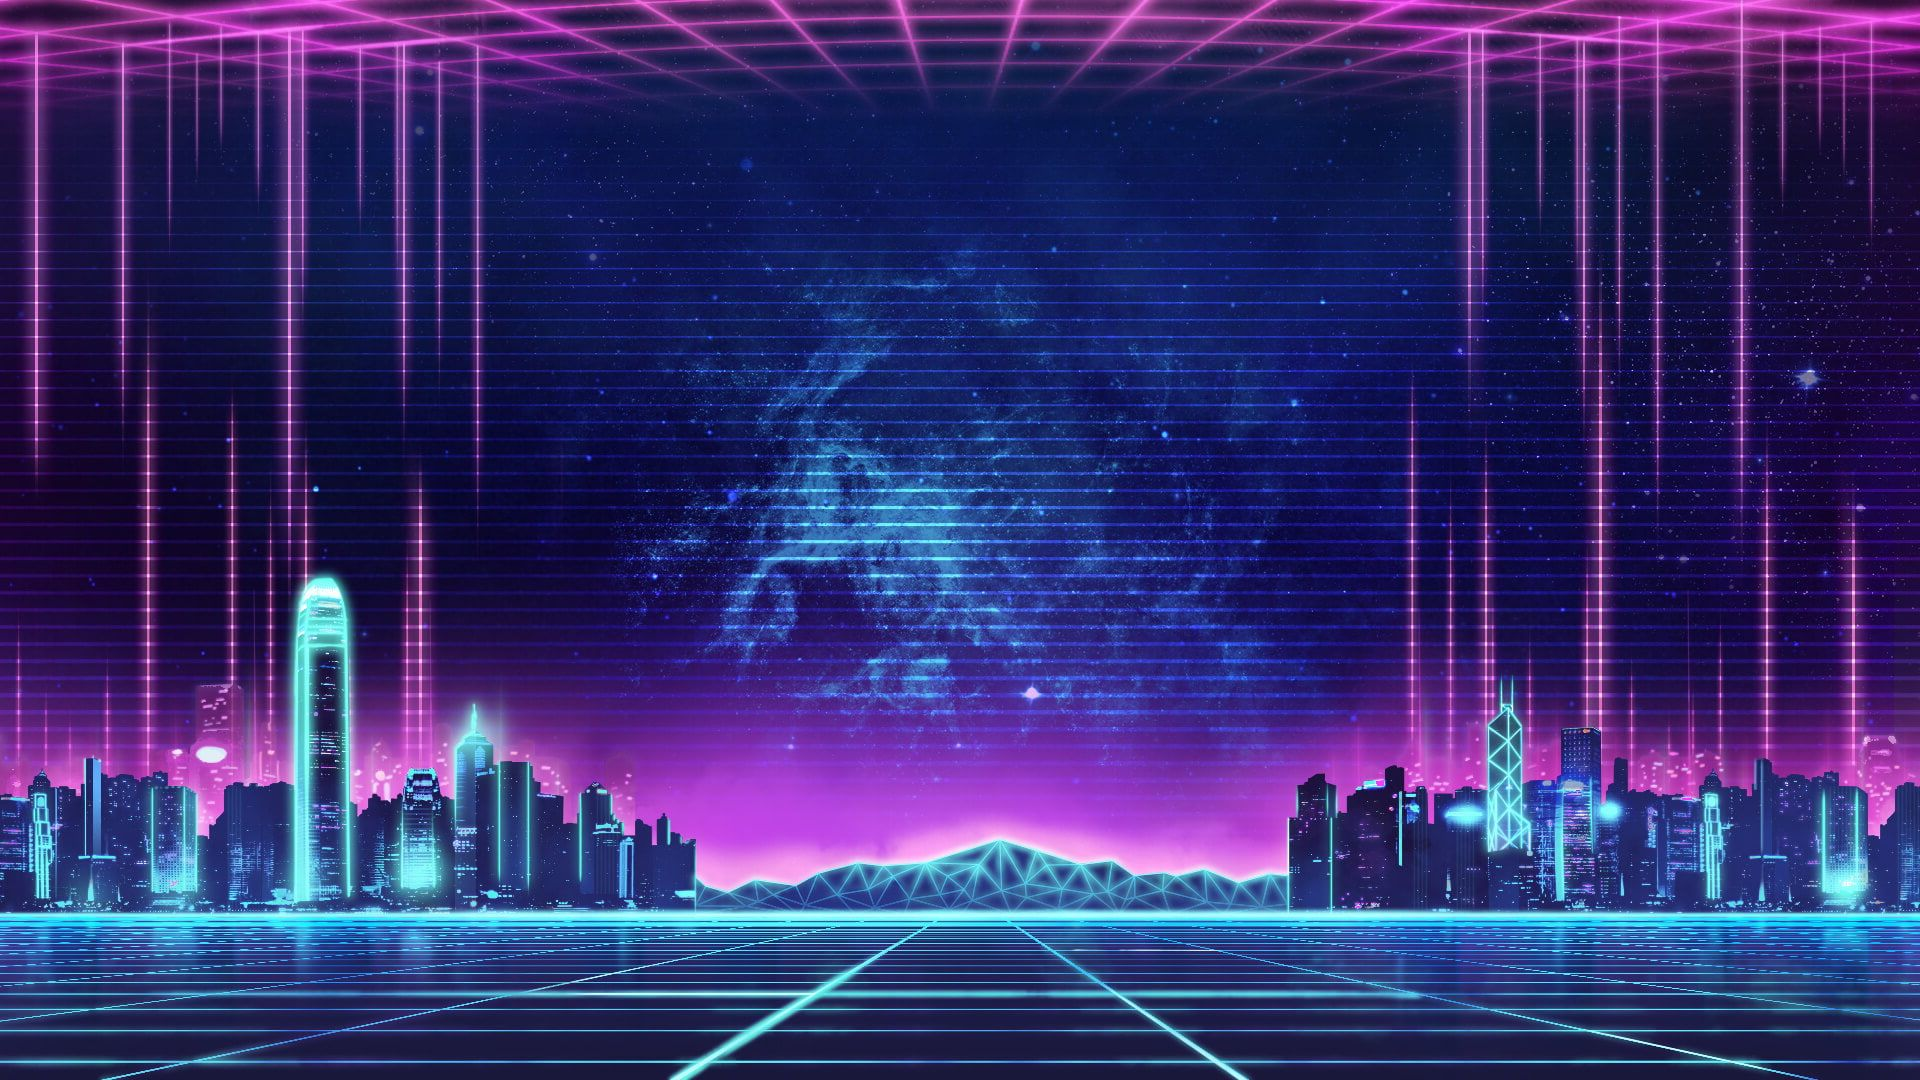 Wallpaper Synthwave Music Retro Neon City Others Architecture Built Structure Vaporwave Wallpaper Neon Wallpaper City Wallpaper